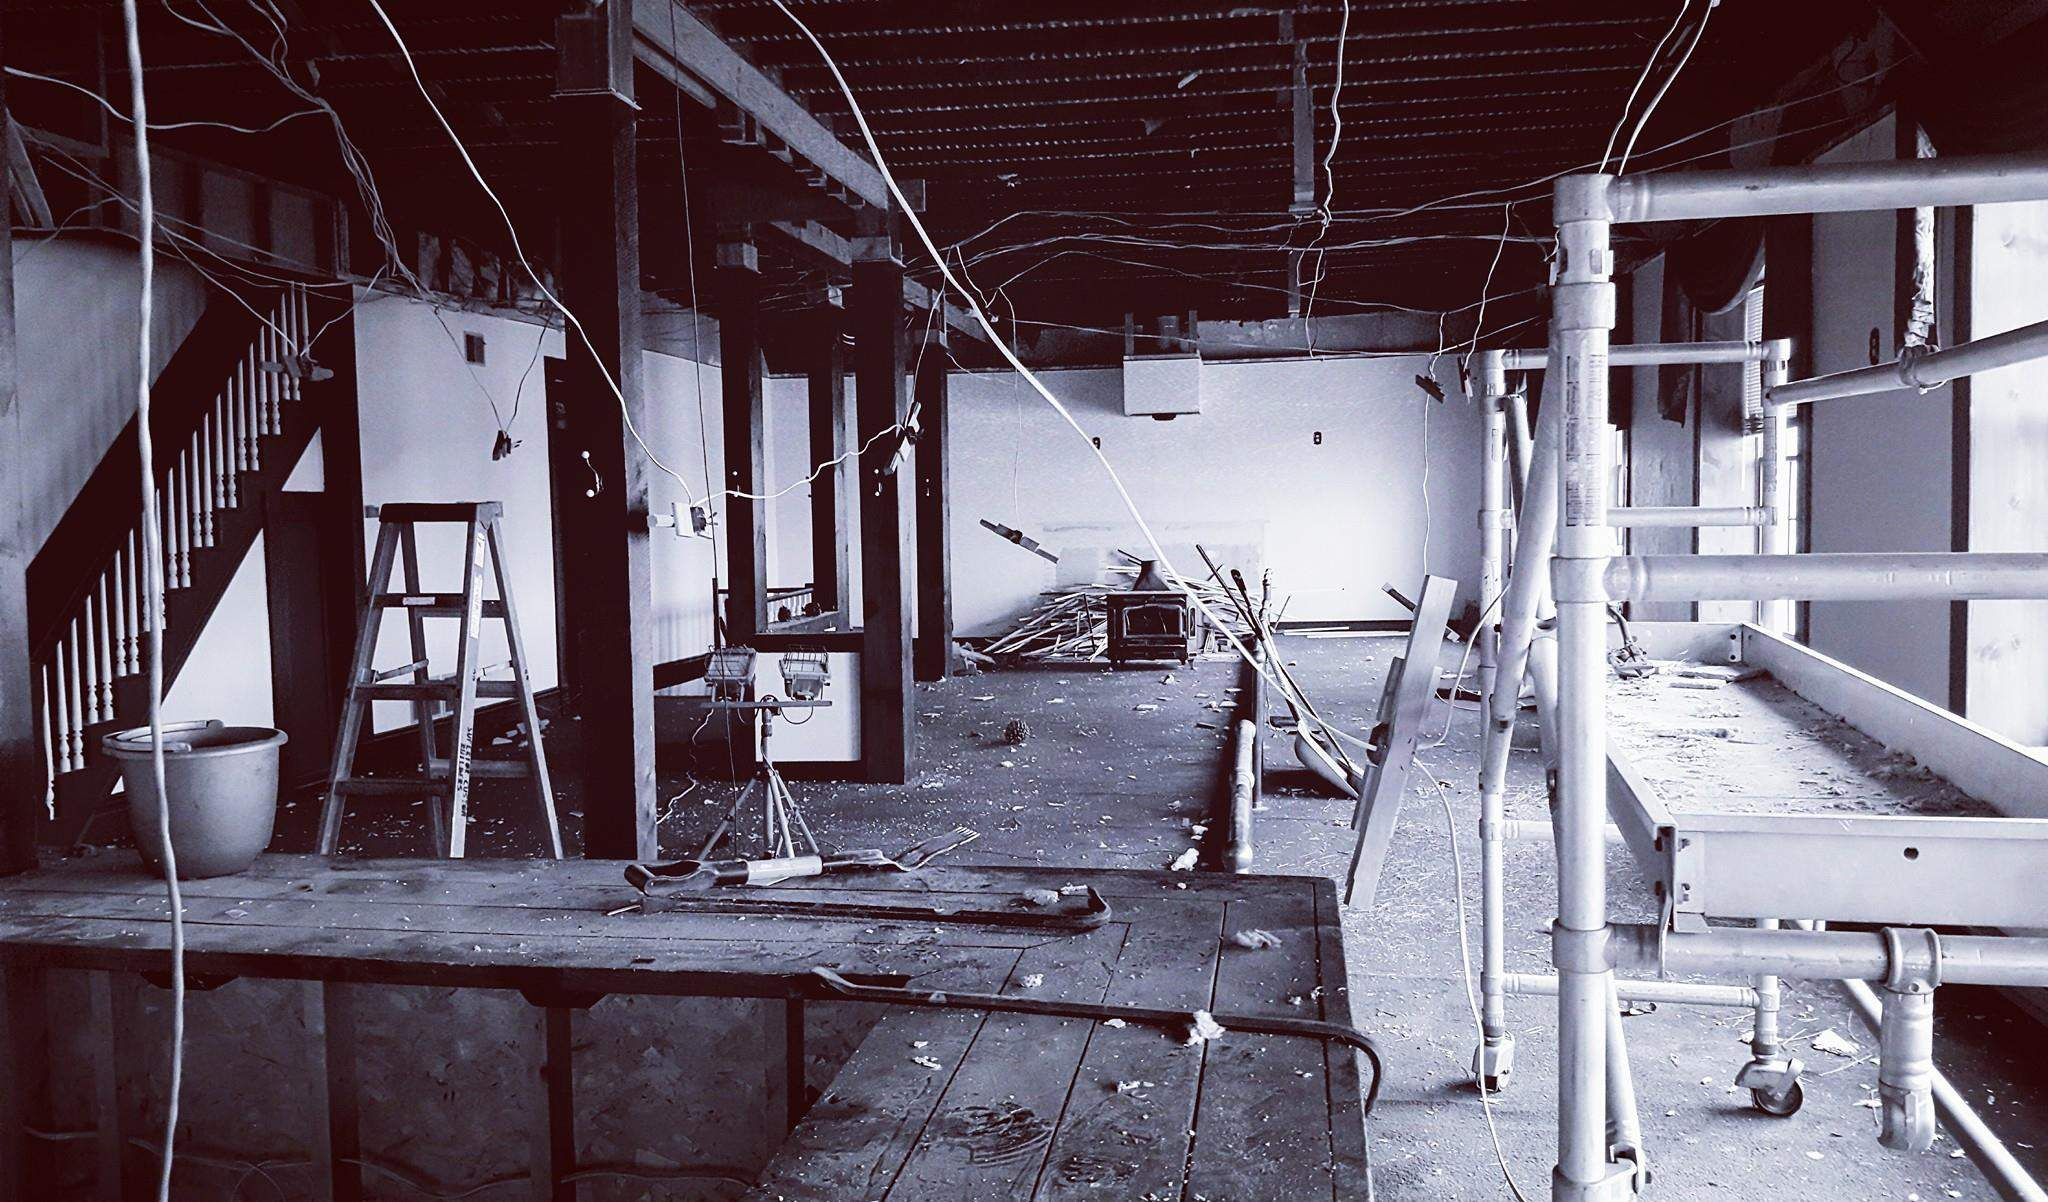 In this photo shared on the Landmark's Facebook page, renovations to the 185-year-old building are continuing. St. Nicholas Brewing Company, which bought the building in August, is aiming for a late summer/early fall reopening next year.